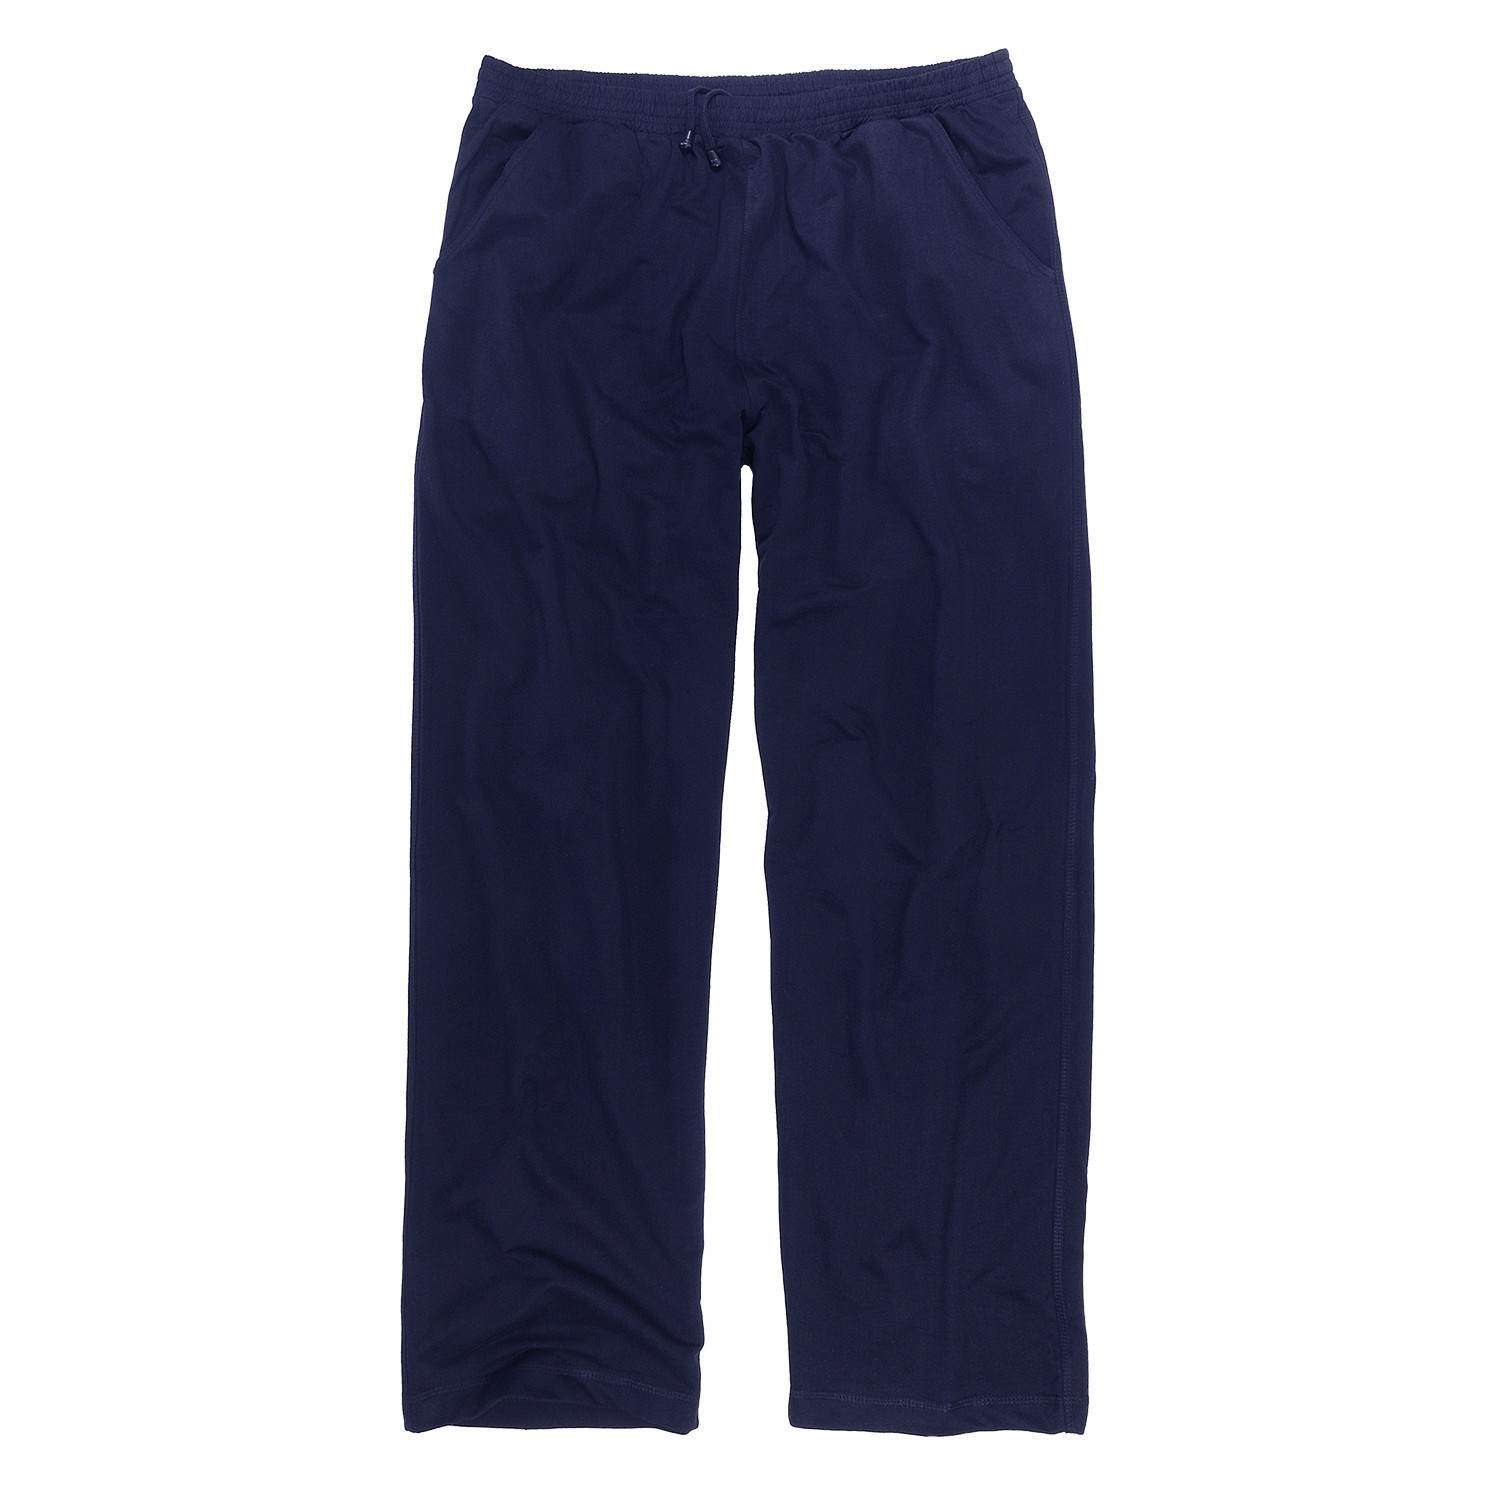 Detail Image to Blue sweat pants by Big Basics in plus sizes up to 12XL